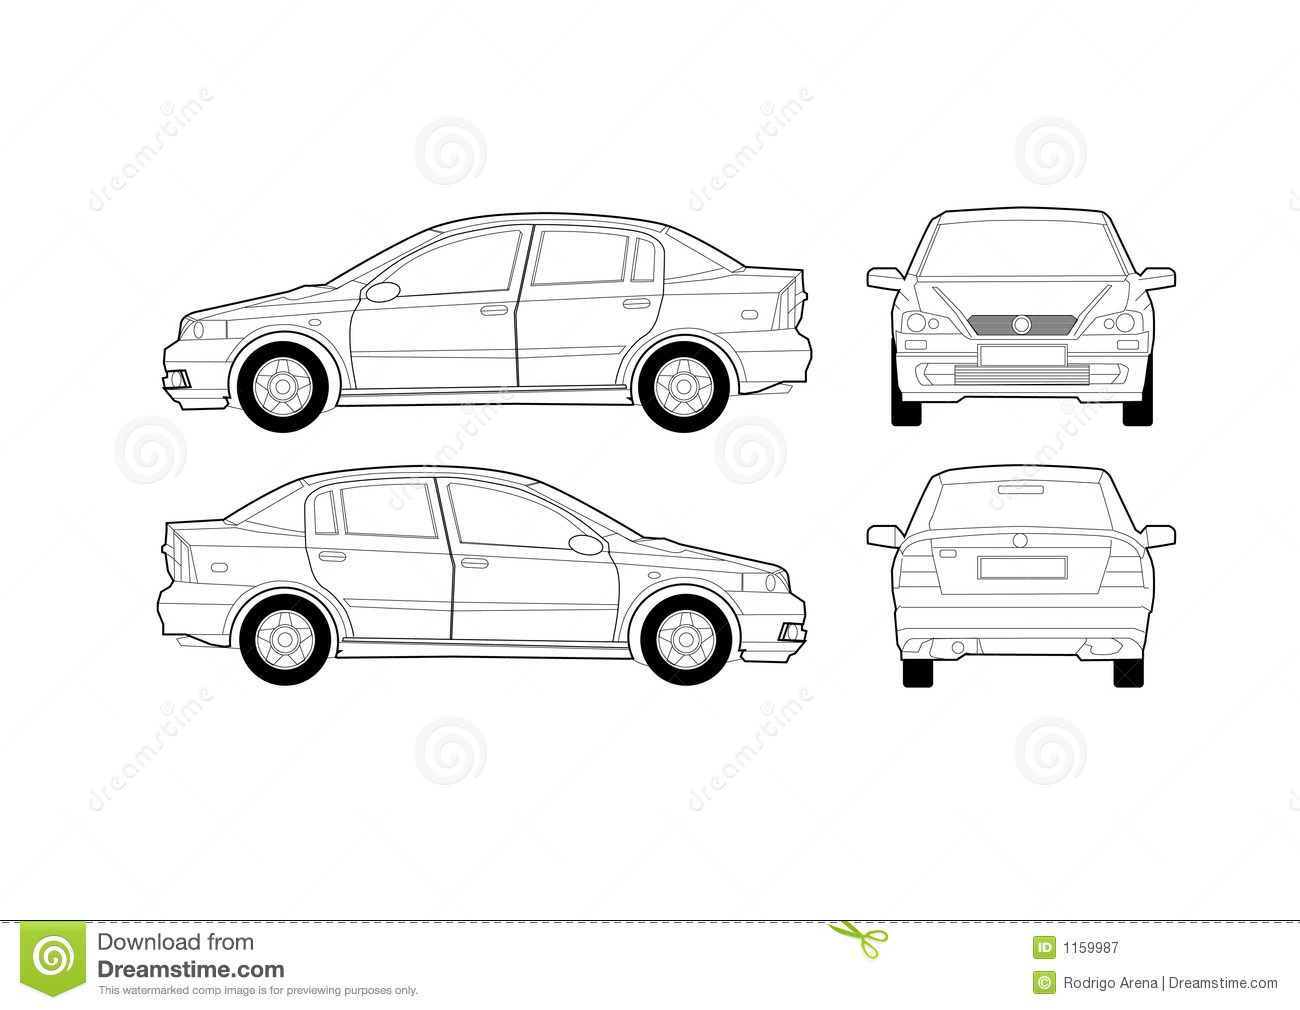 suv body diagram